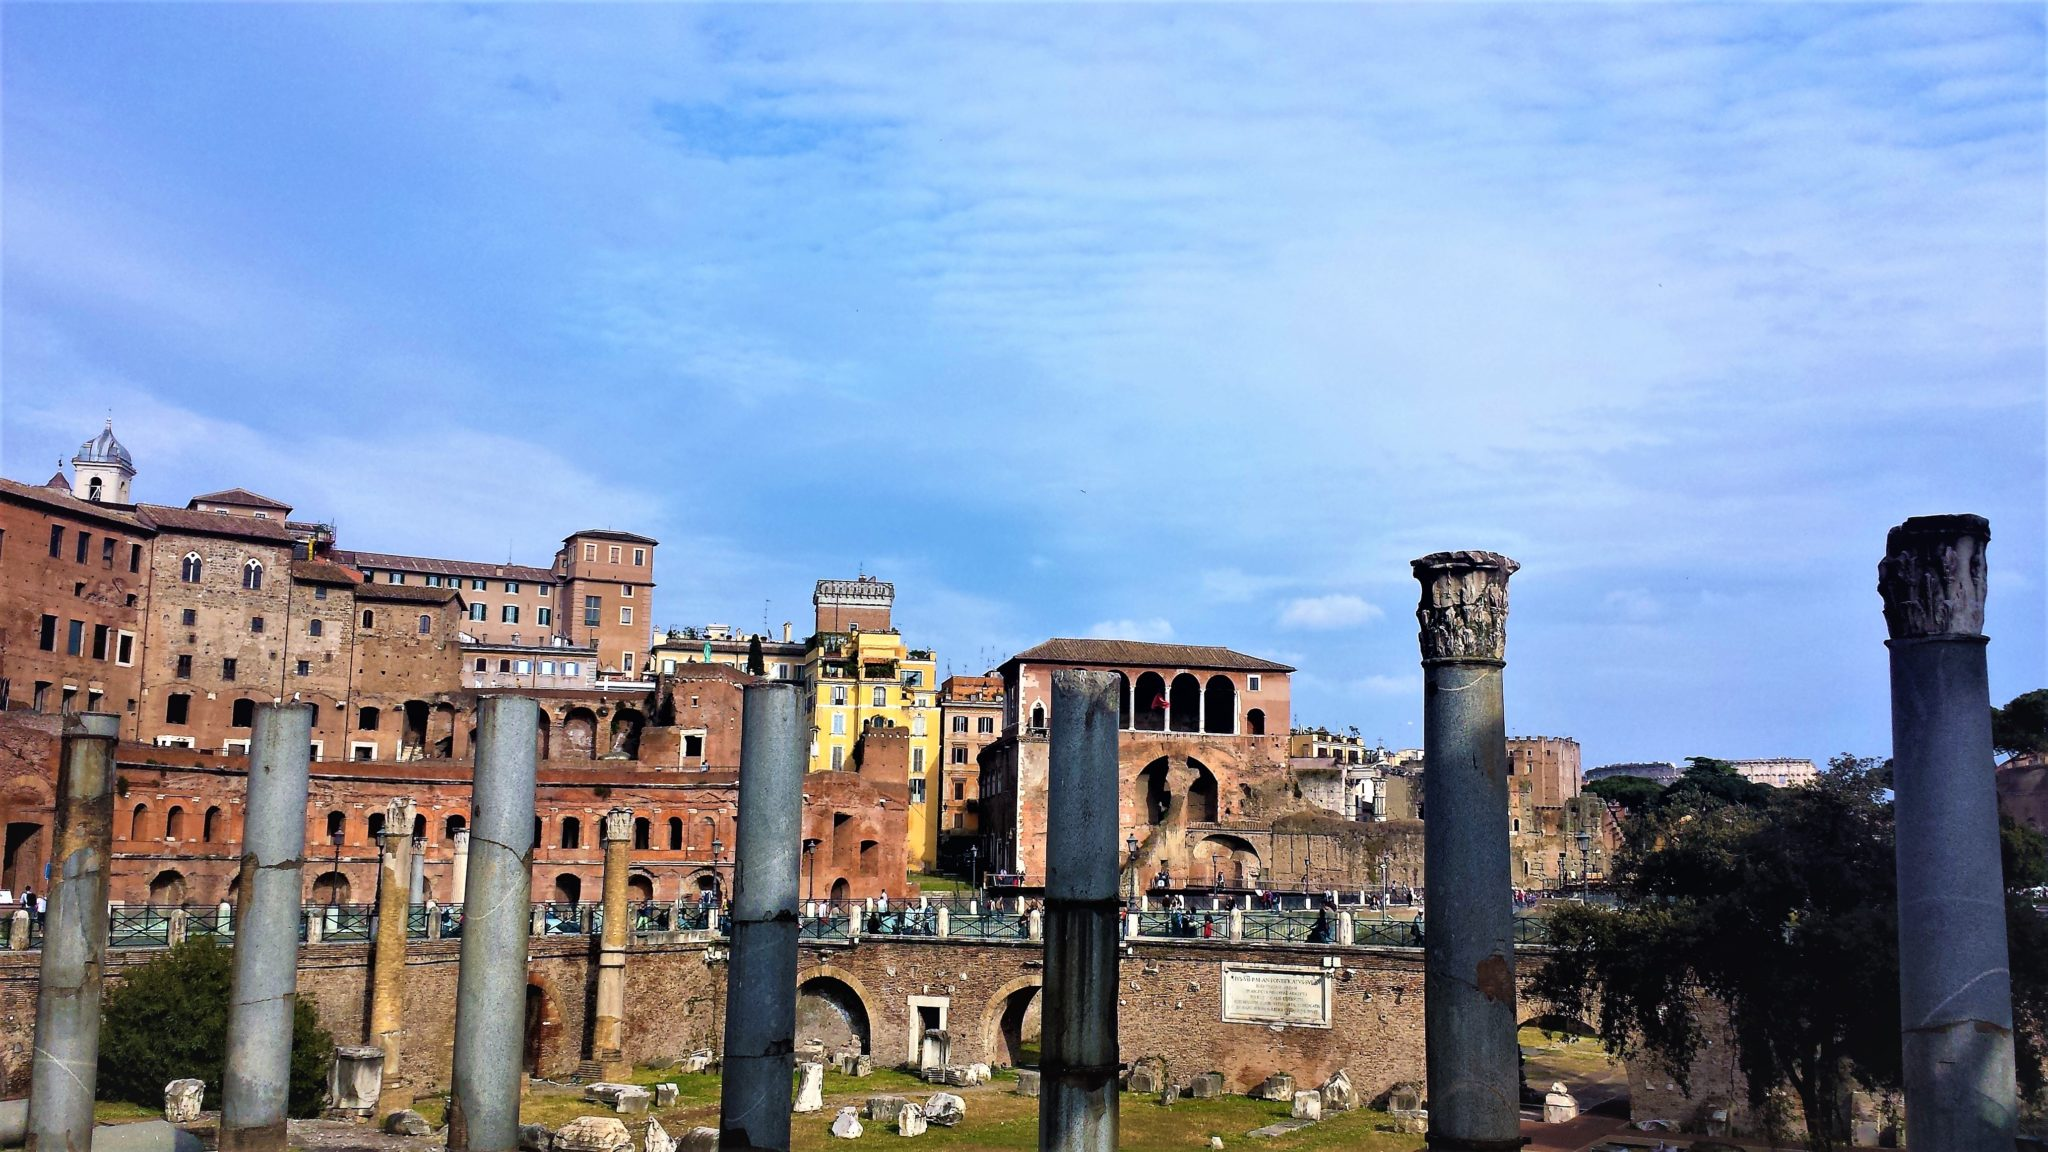 Columns, top things to do in Rome, Roman Forum, Italy